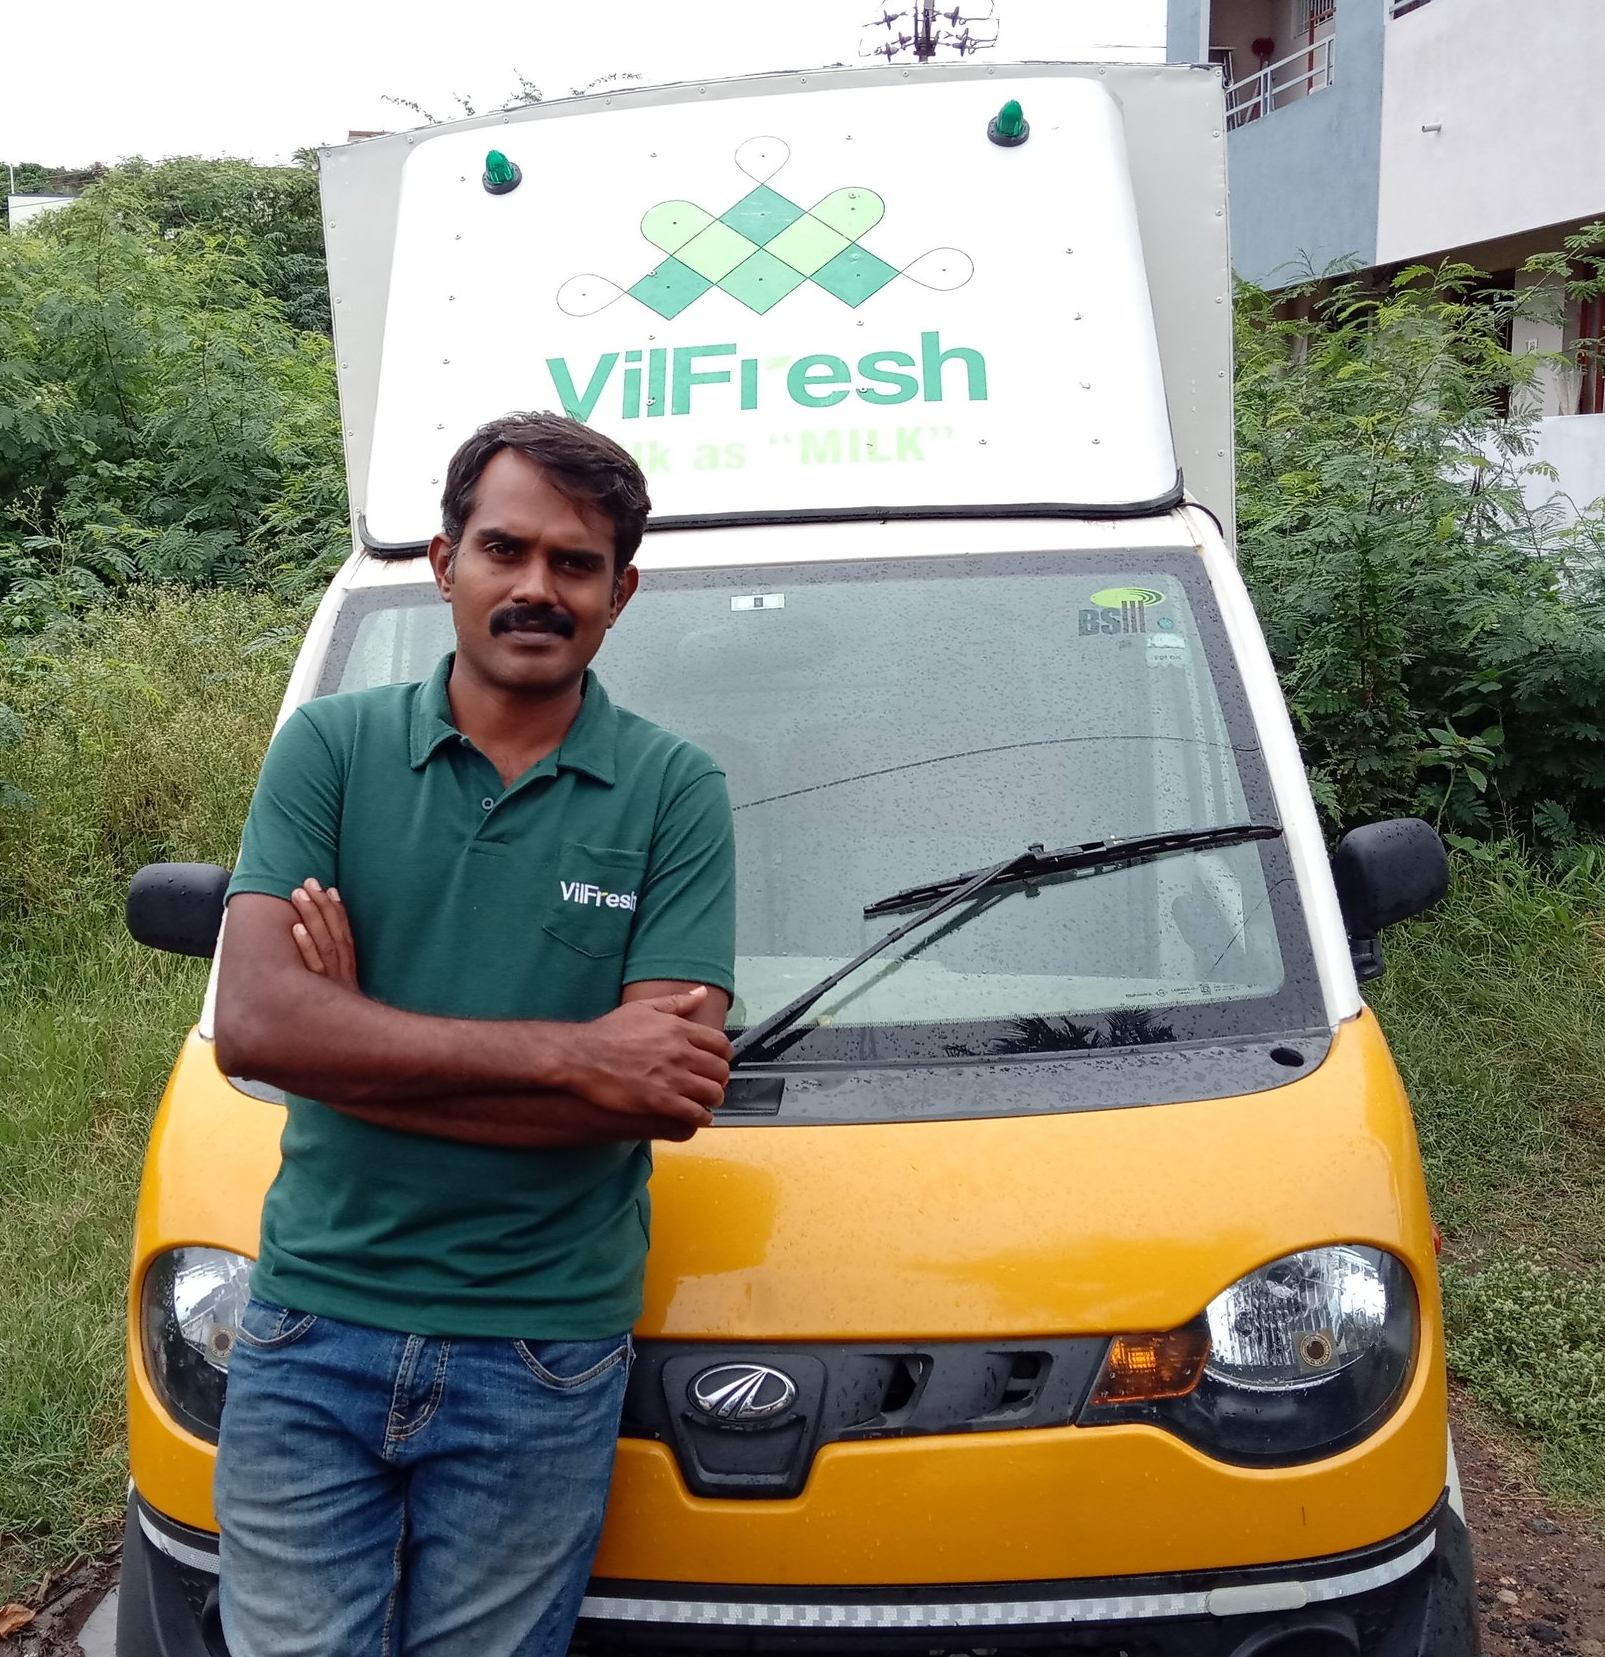 Selvakumar Varadharajan of Laymen Agro poses with a truck used to distribute fresh milk and produce from Indian villages directly to urban cities.